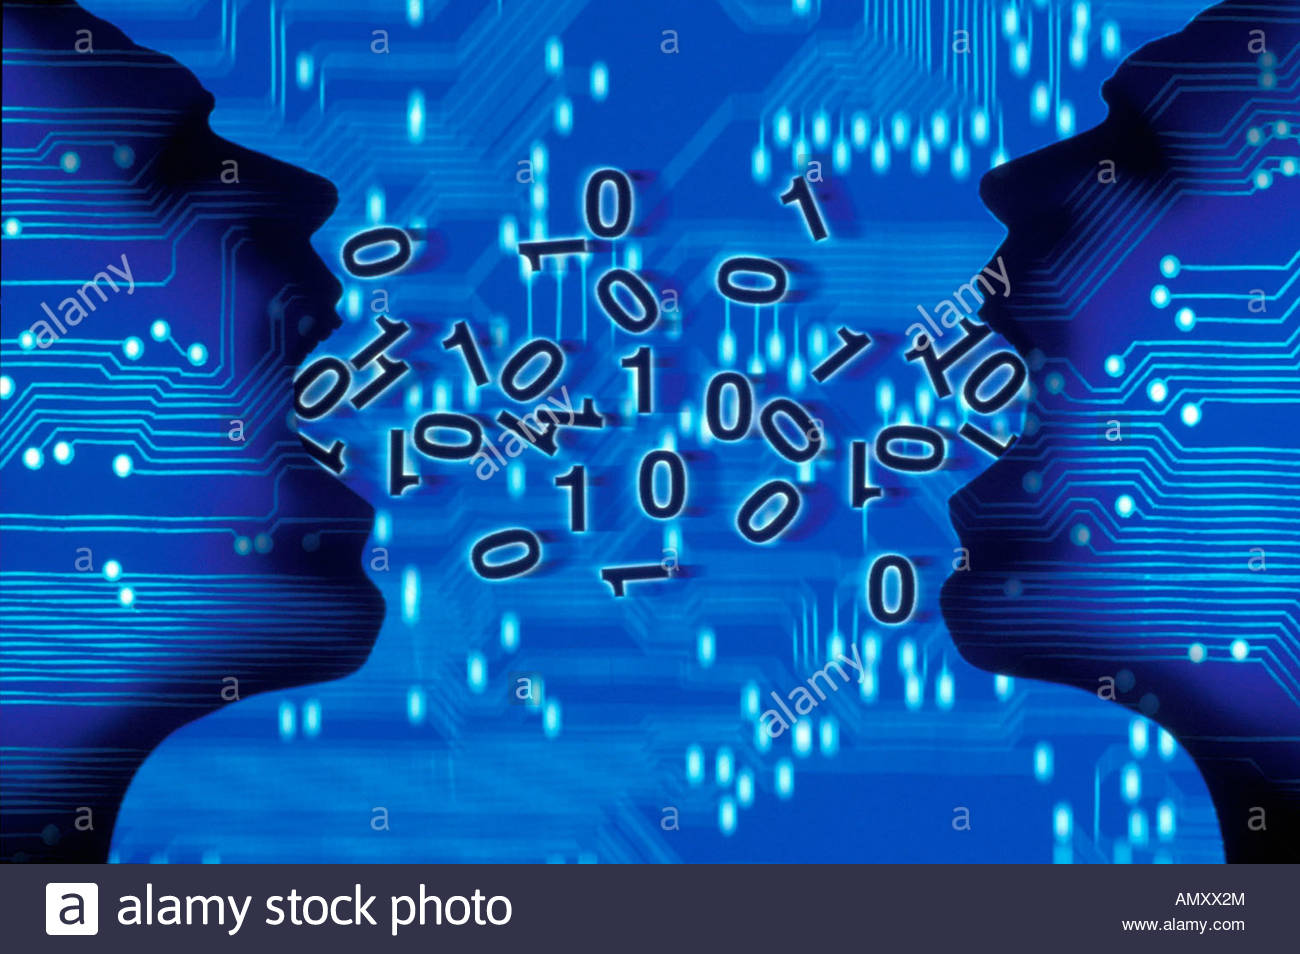 Two Circuit Board Cutout Human Stock Photos Binary Code On Faces Eating Image